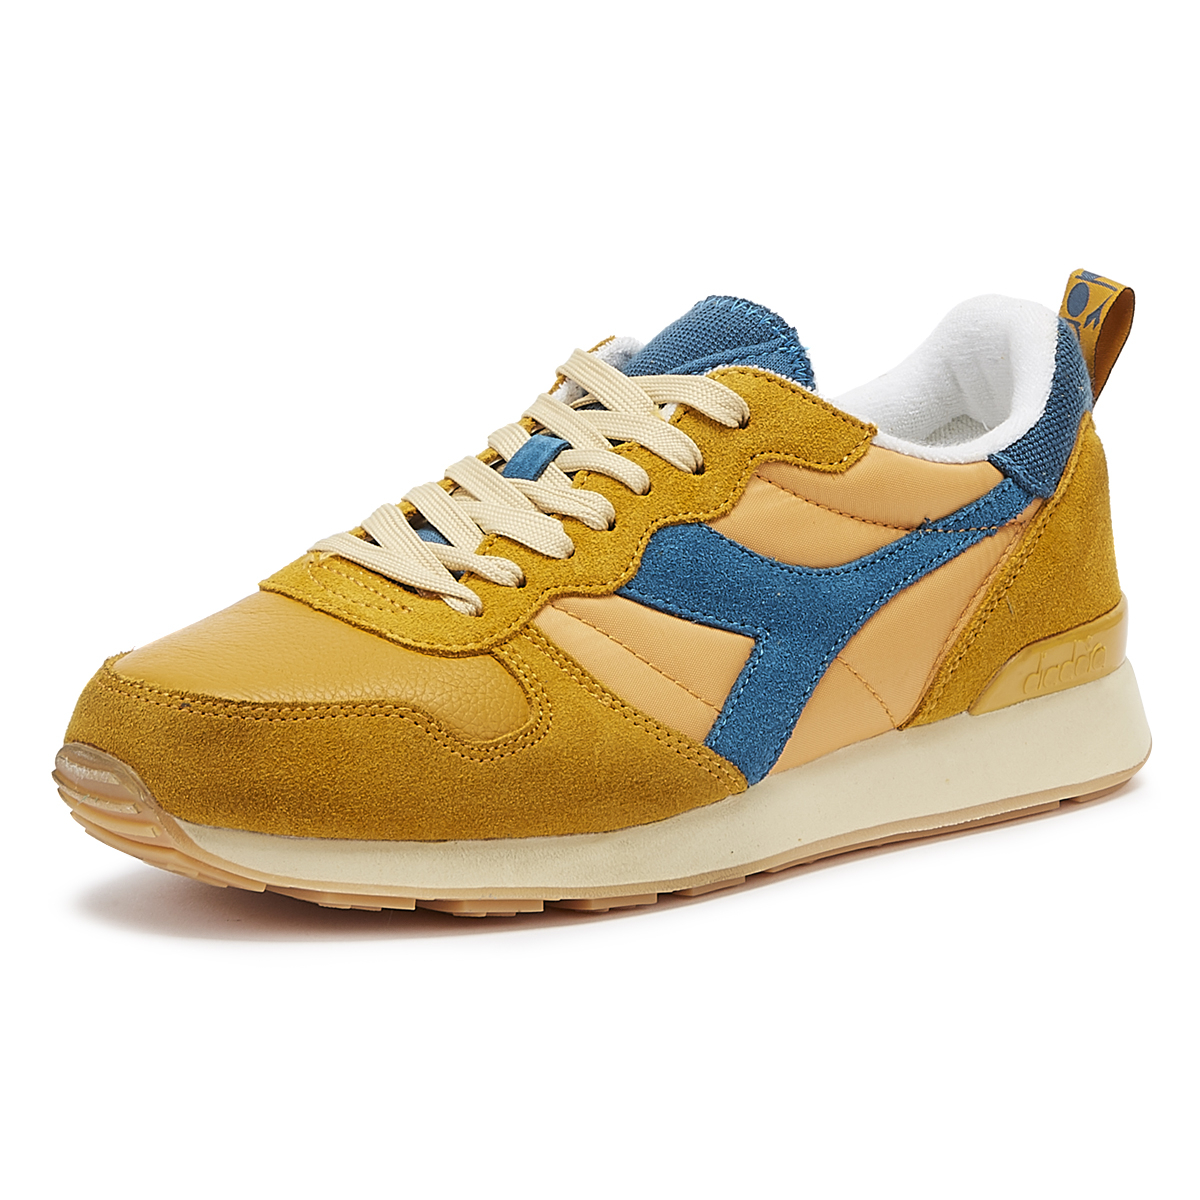 11665eb7 Details about Diadora Camaro Mens Orange Mustard Trainers Lace Up Sport  Casual Shoes